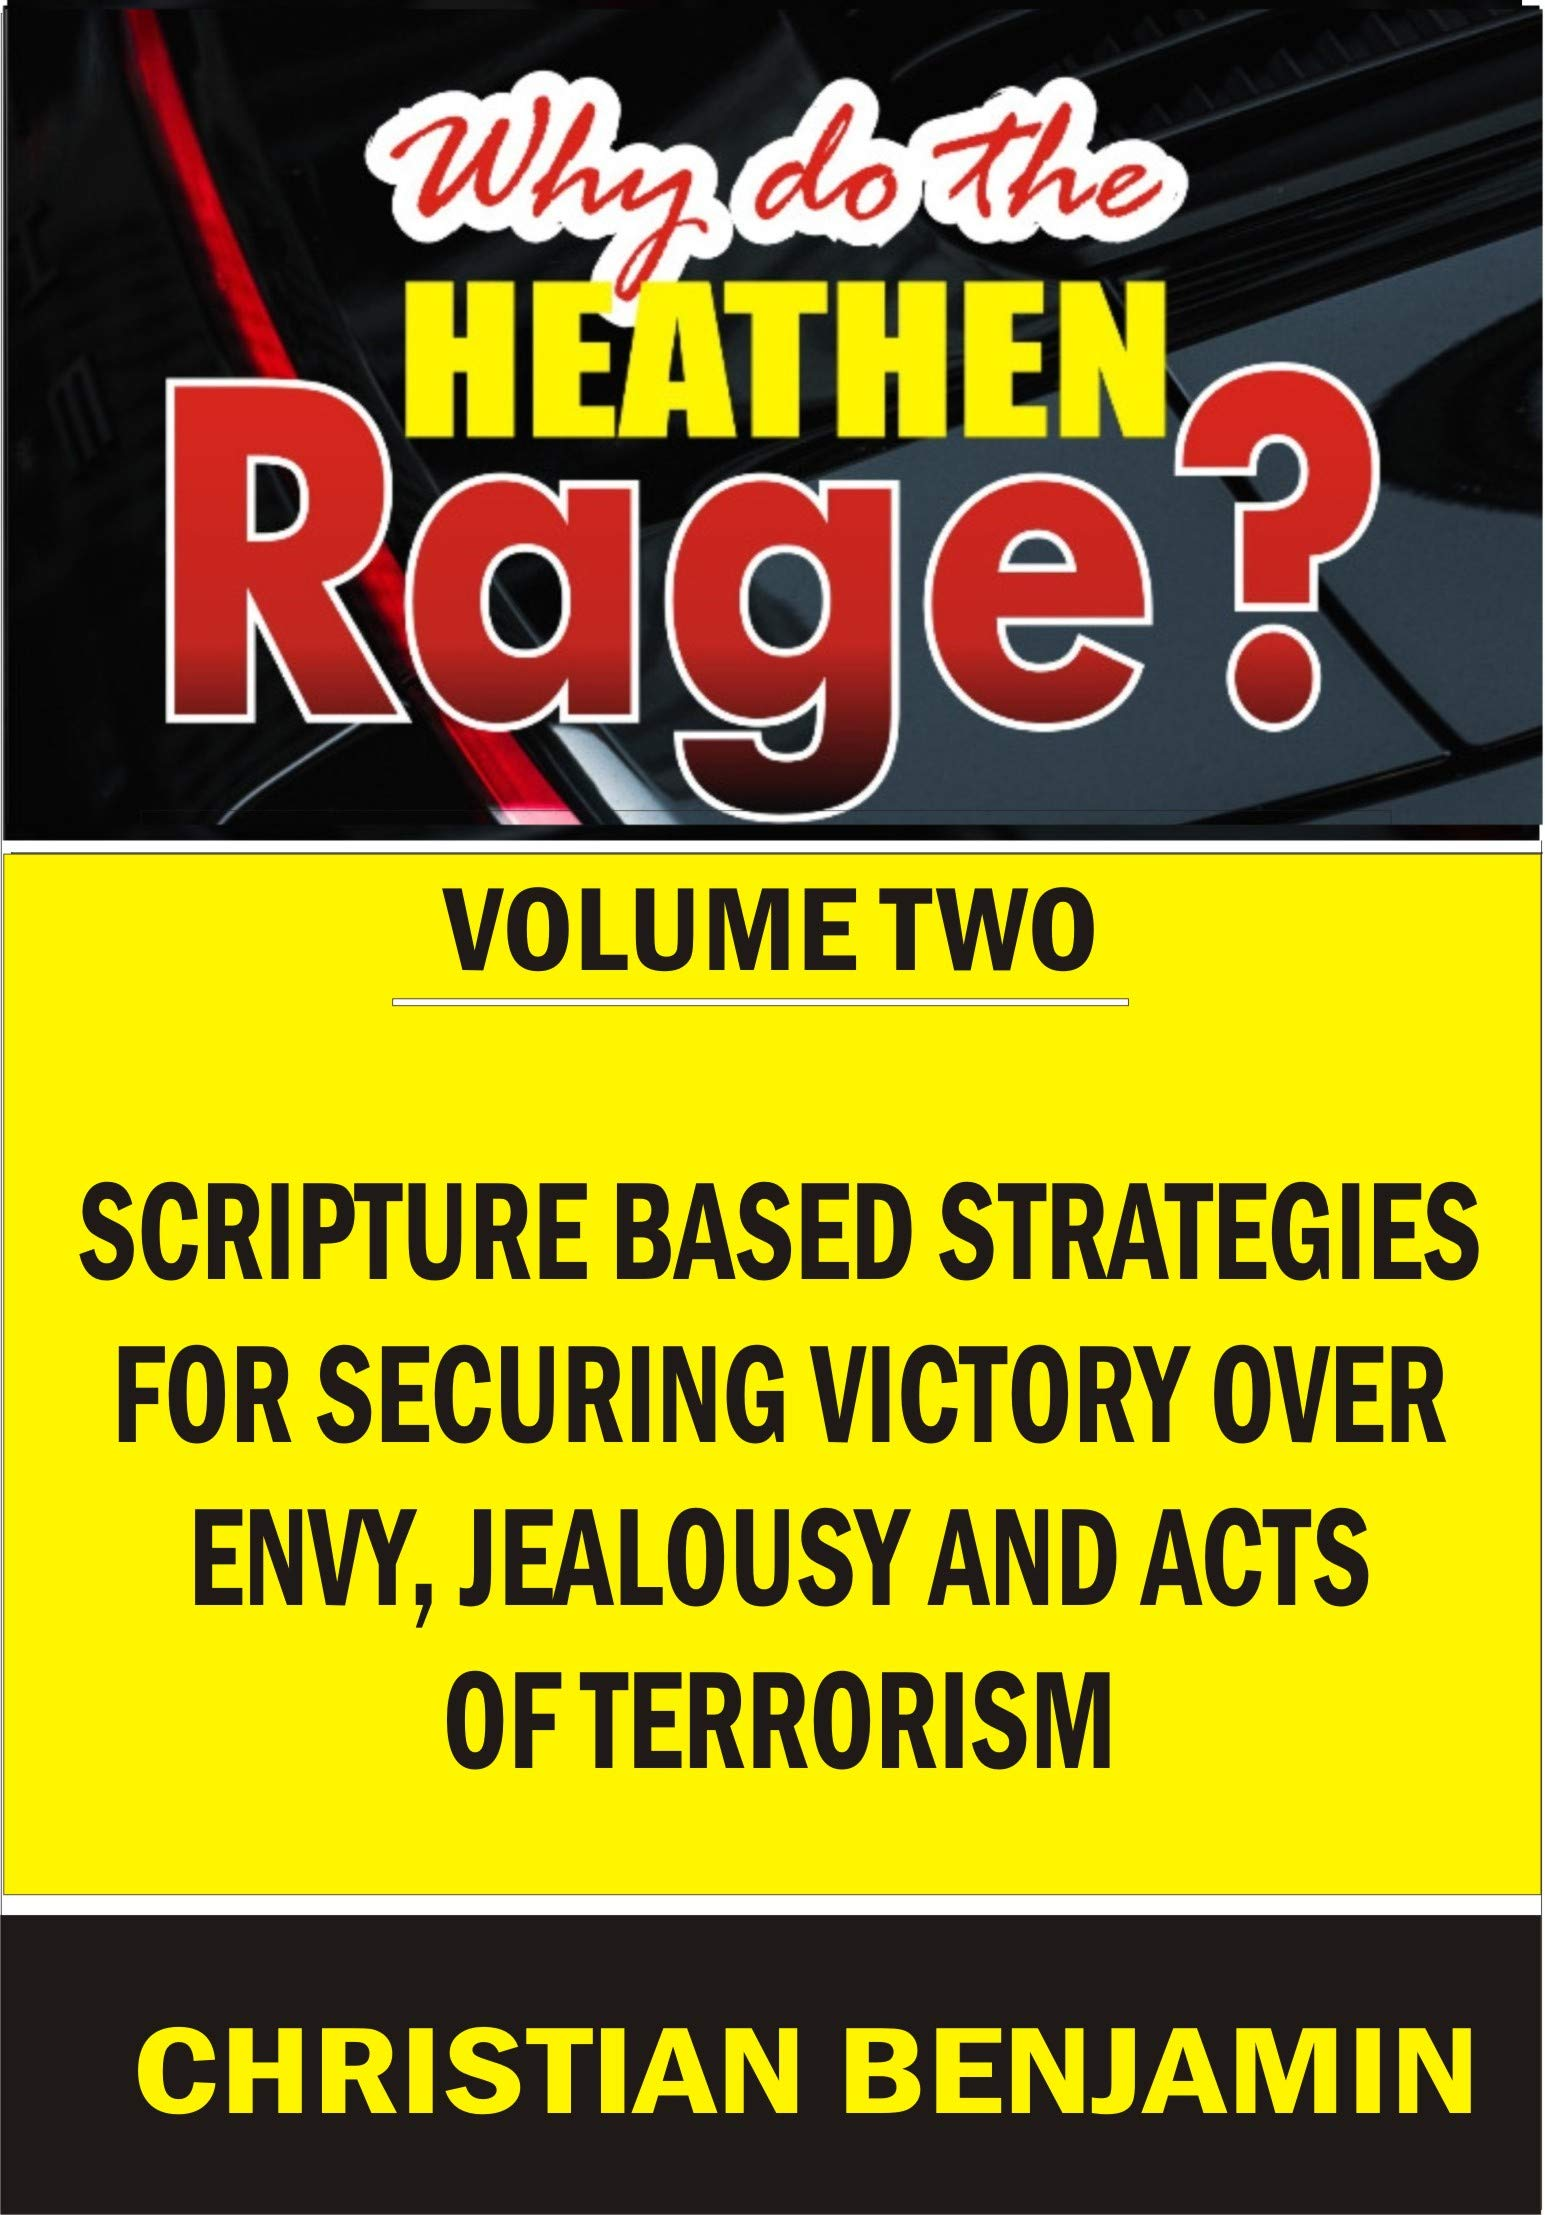 Why do the Heathen Rage? Volume 2: Scripture based Strategies for Securing Victory Over Envy, Jealousy and Acts of Terrorism